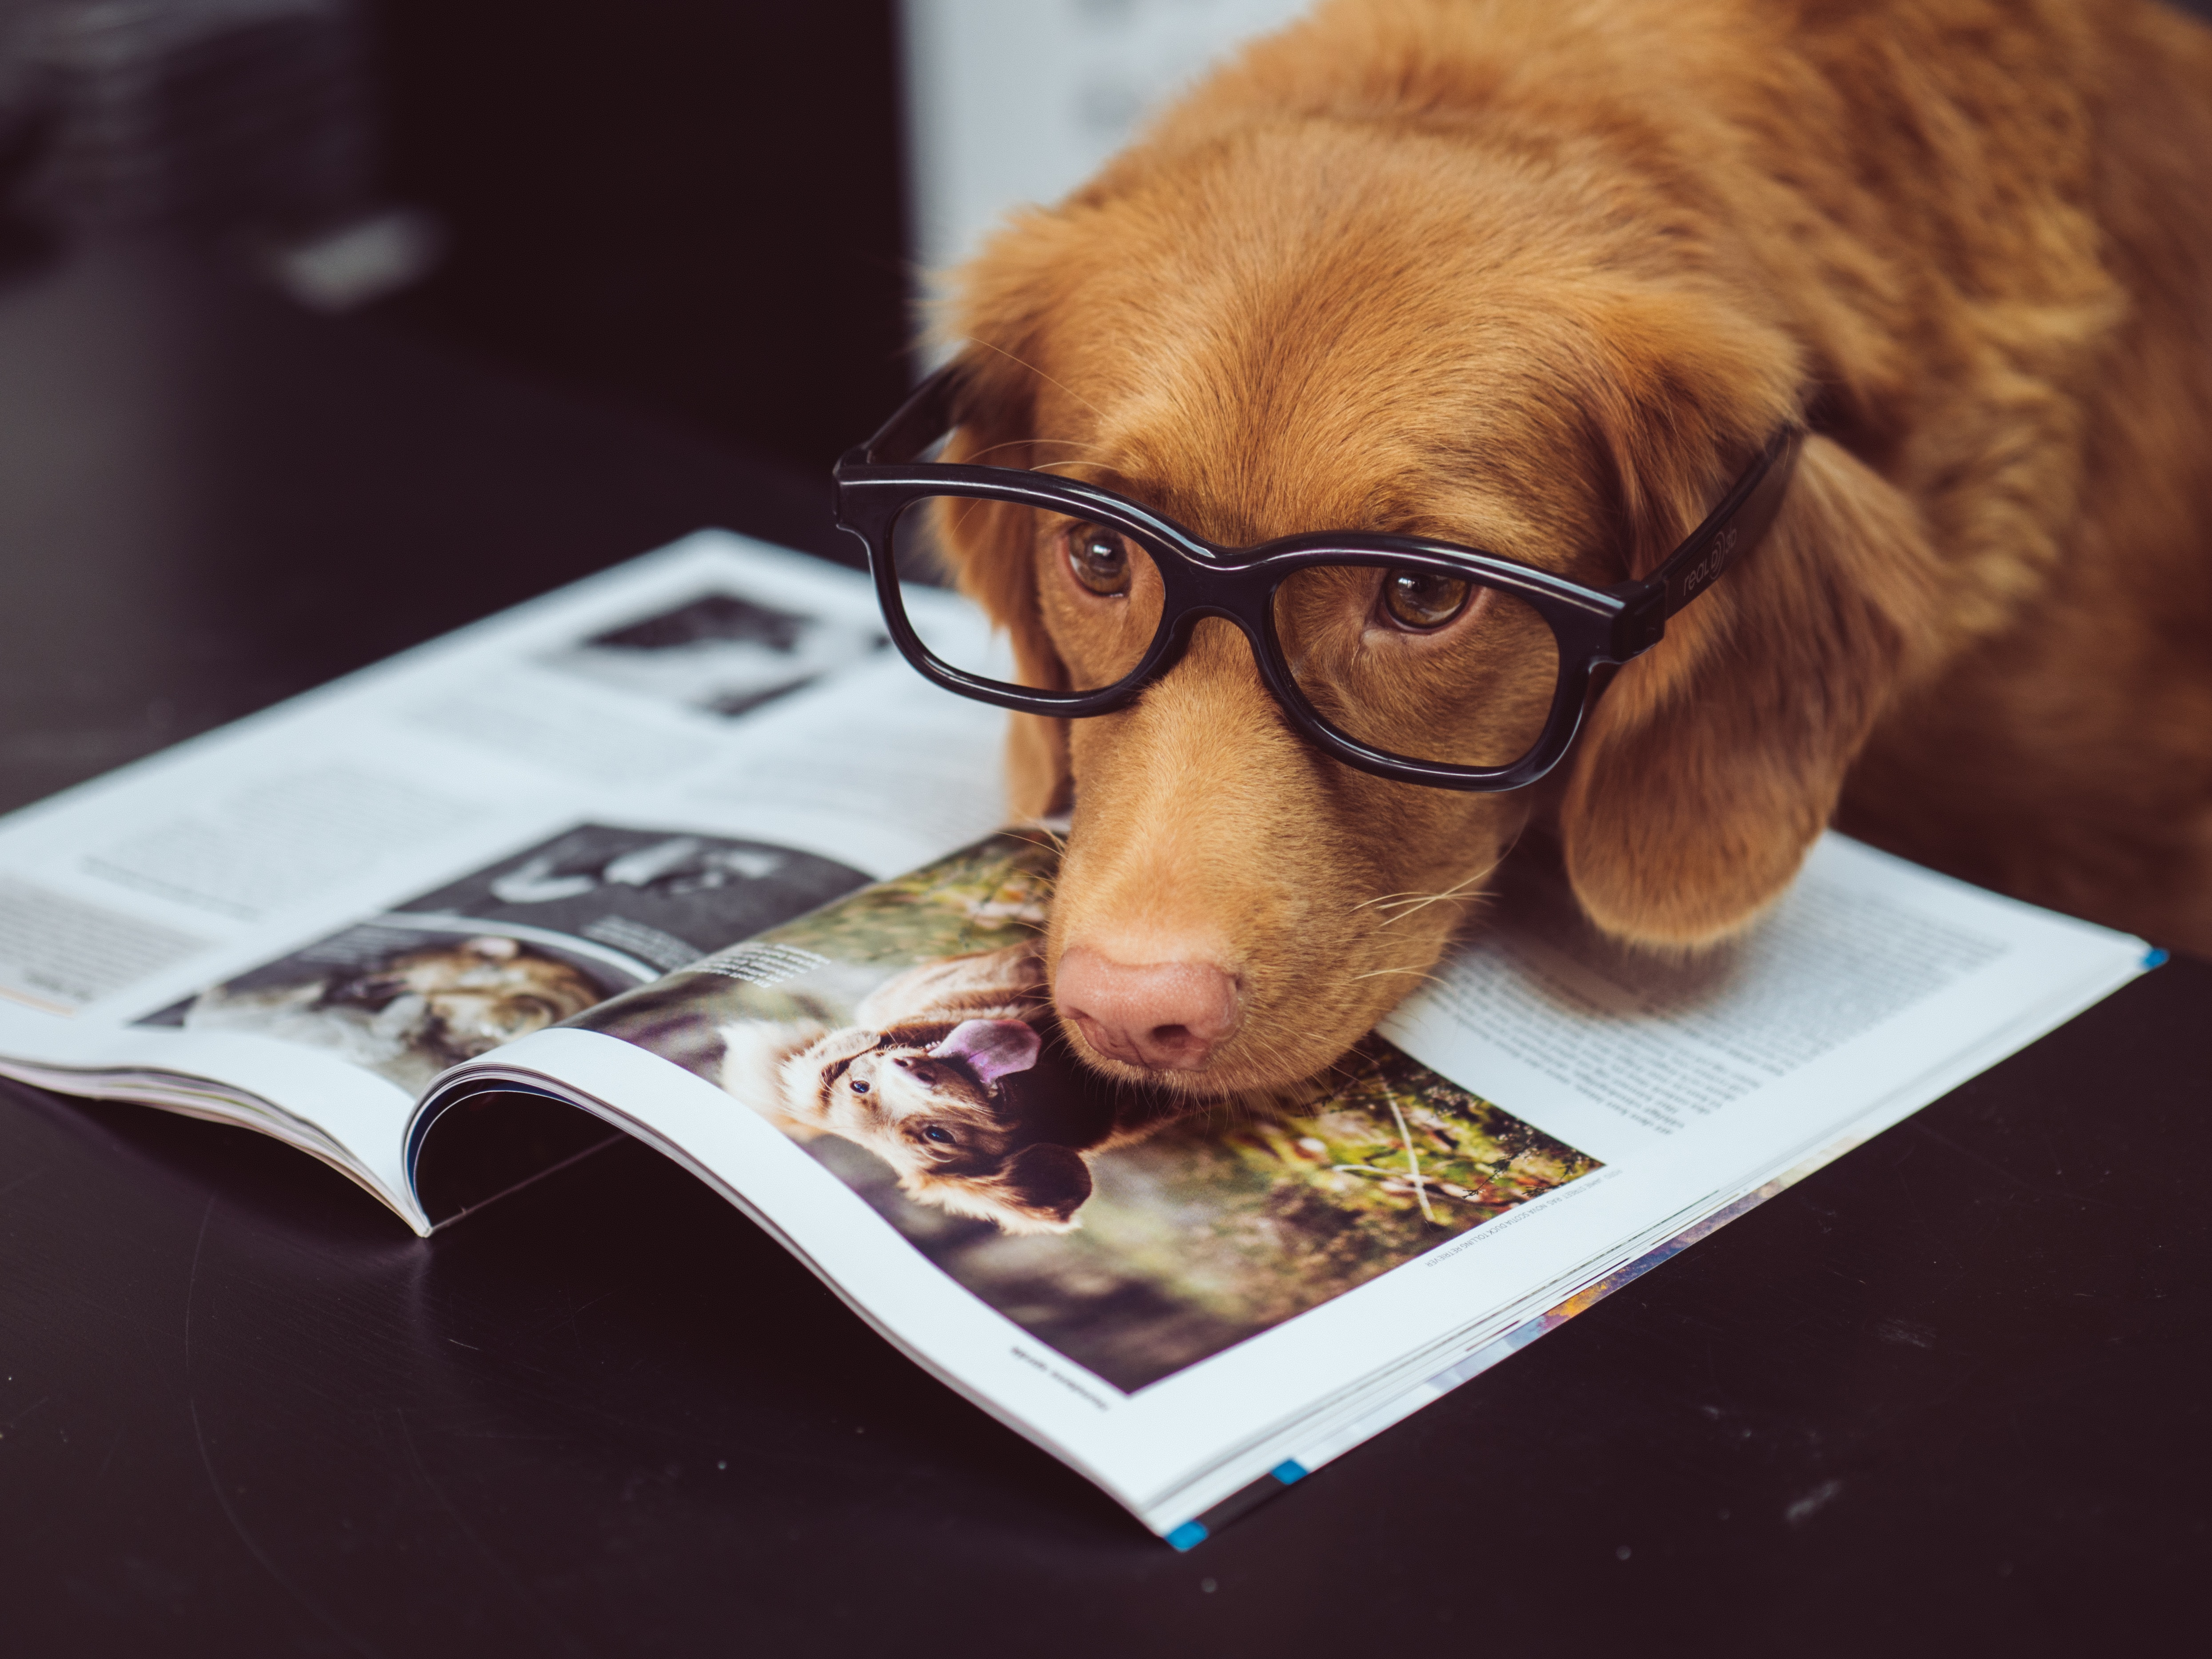 Dog with glasses looking at a dog magazine.